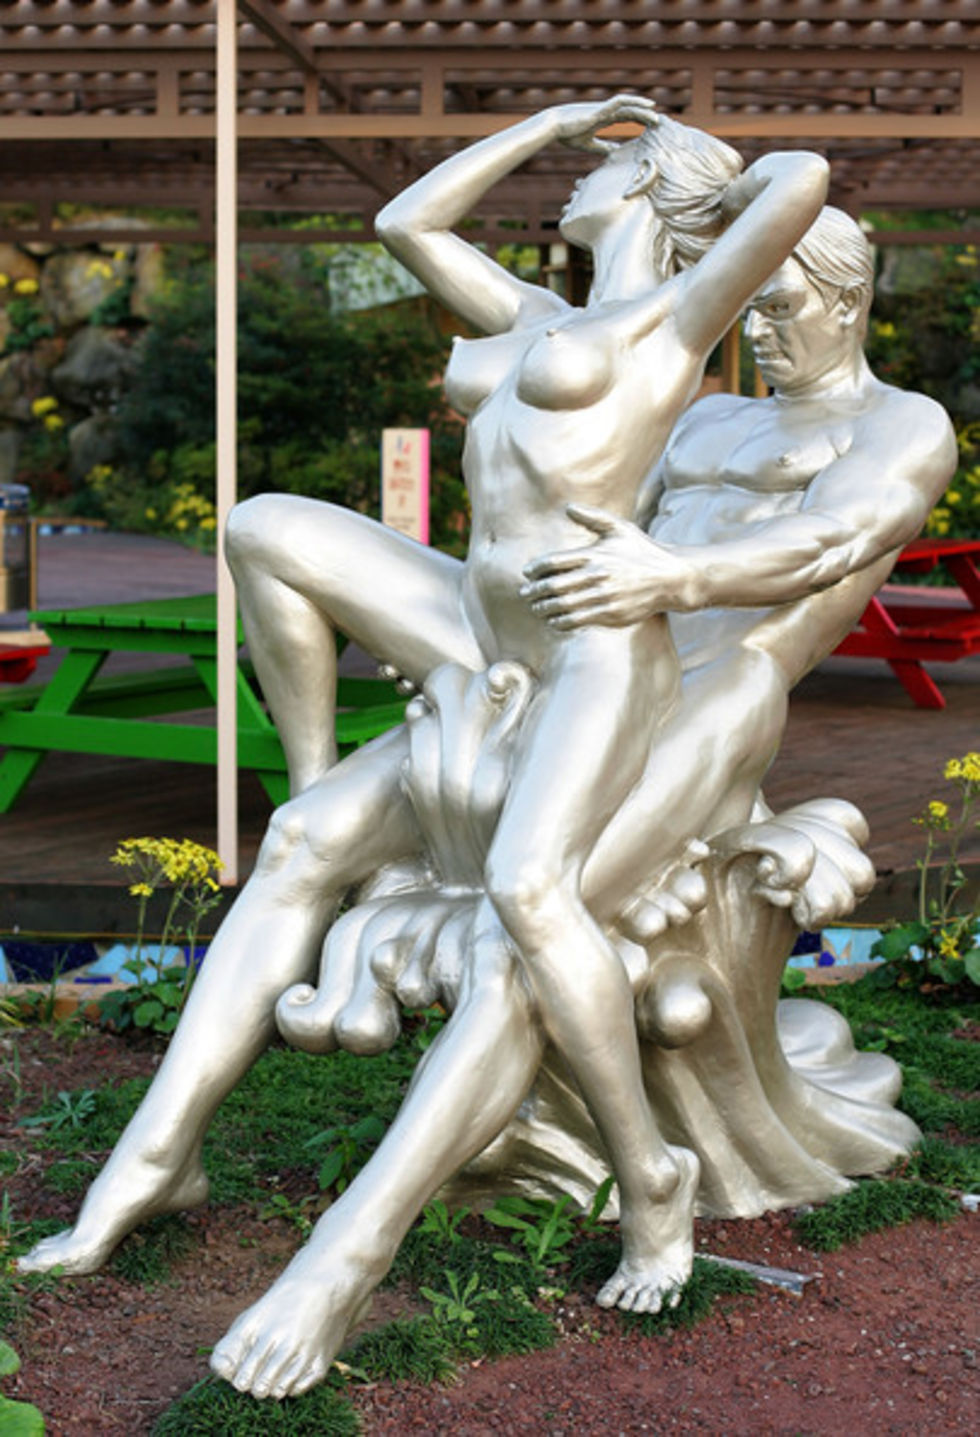 Statue sex download 3gp hentai video